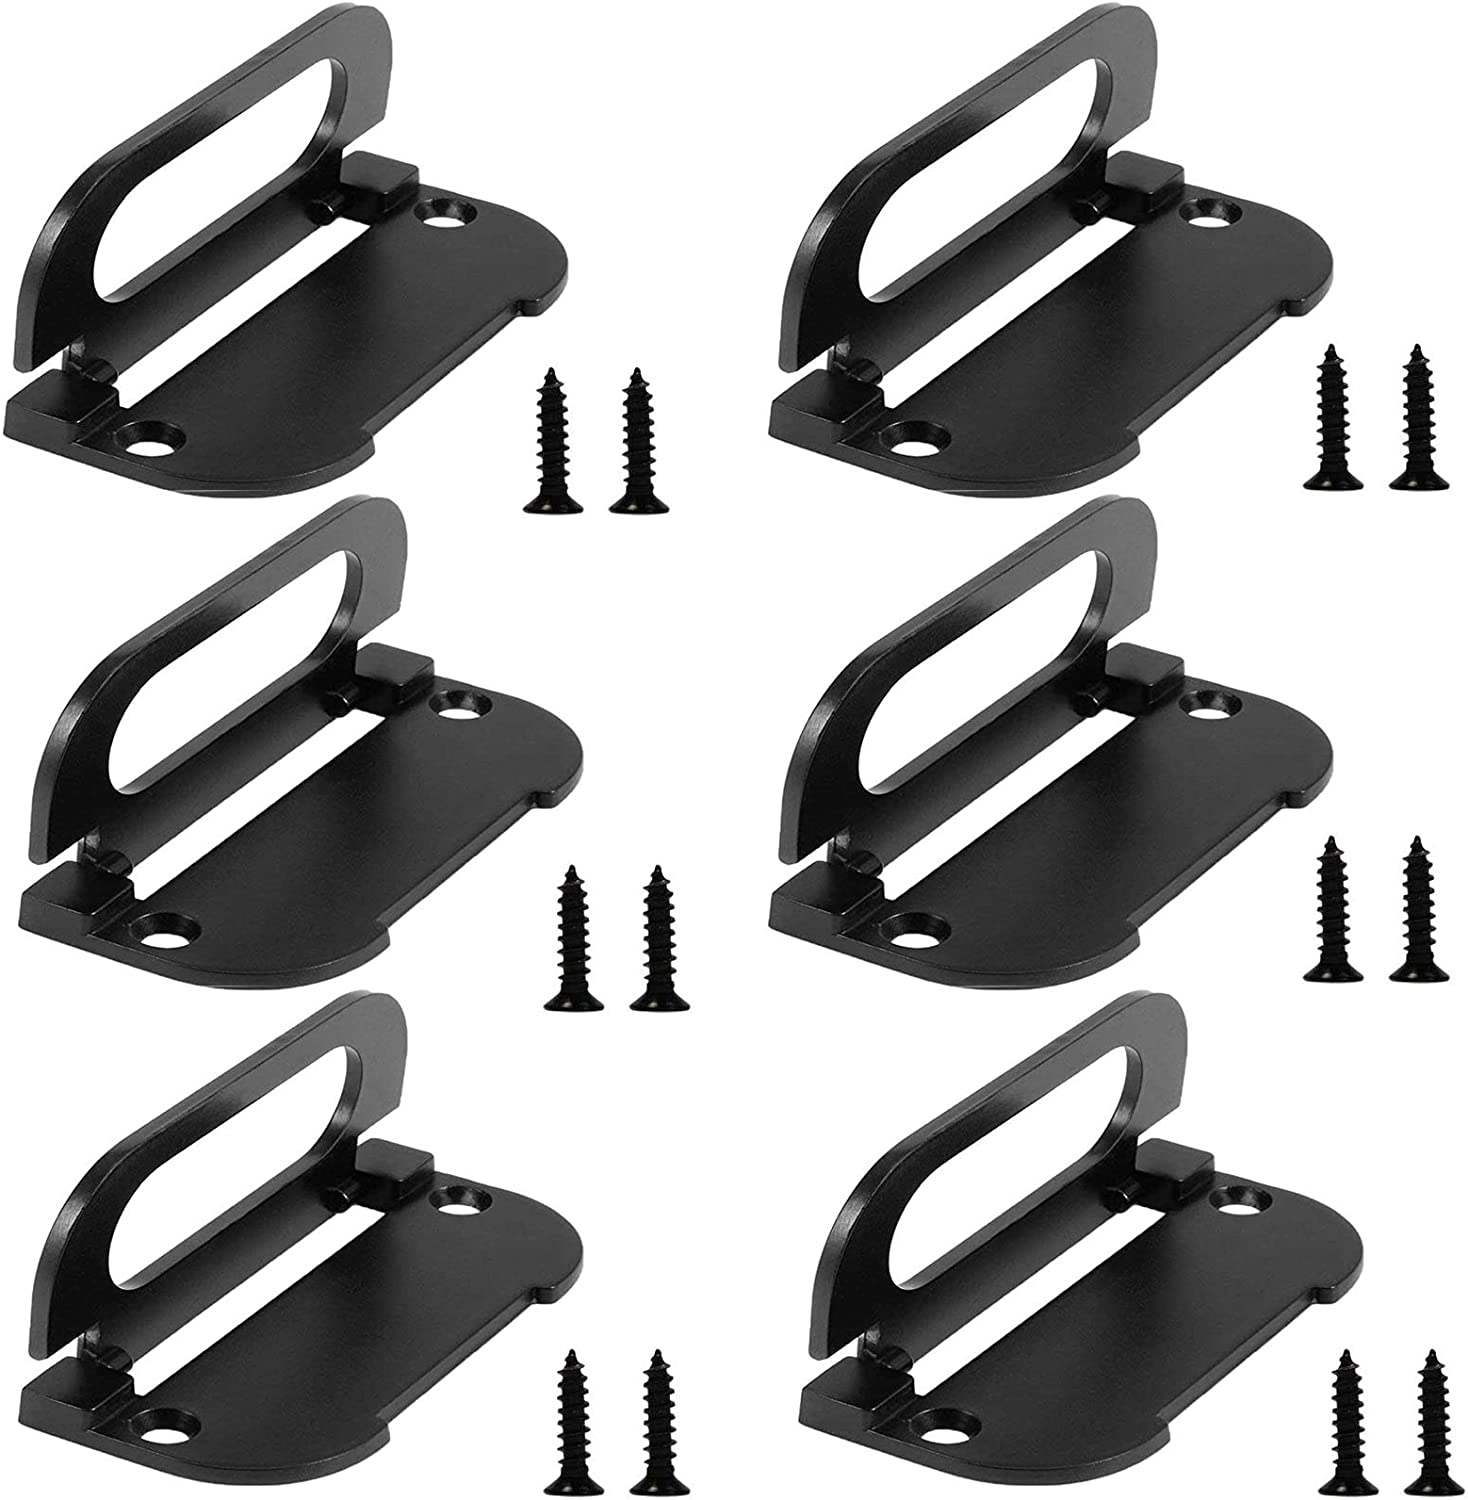 Flush Ring Pull Handle,6 Pack 2.87 inch Zinc Alloy Pull Handle Hidden Recessed Furniture Grip for Door Drawer Cabinets(Matte Black)